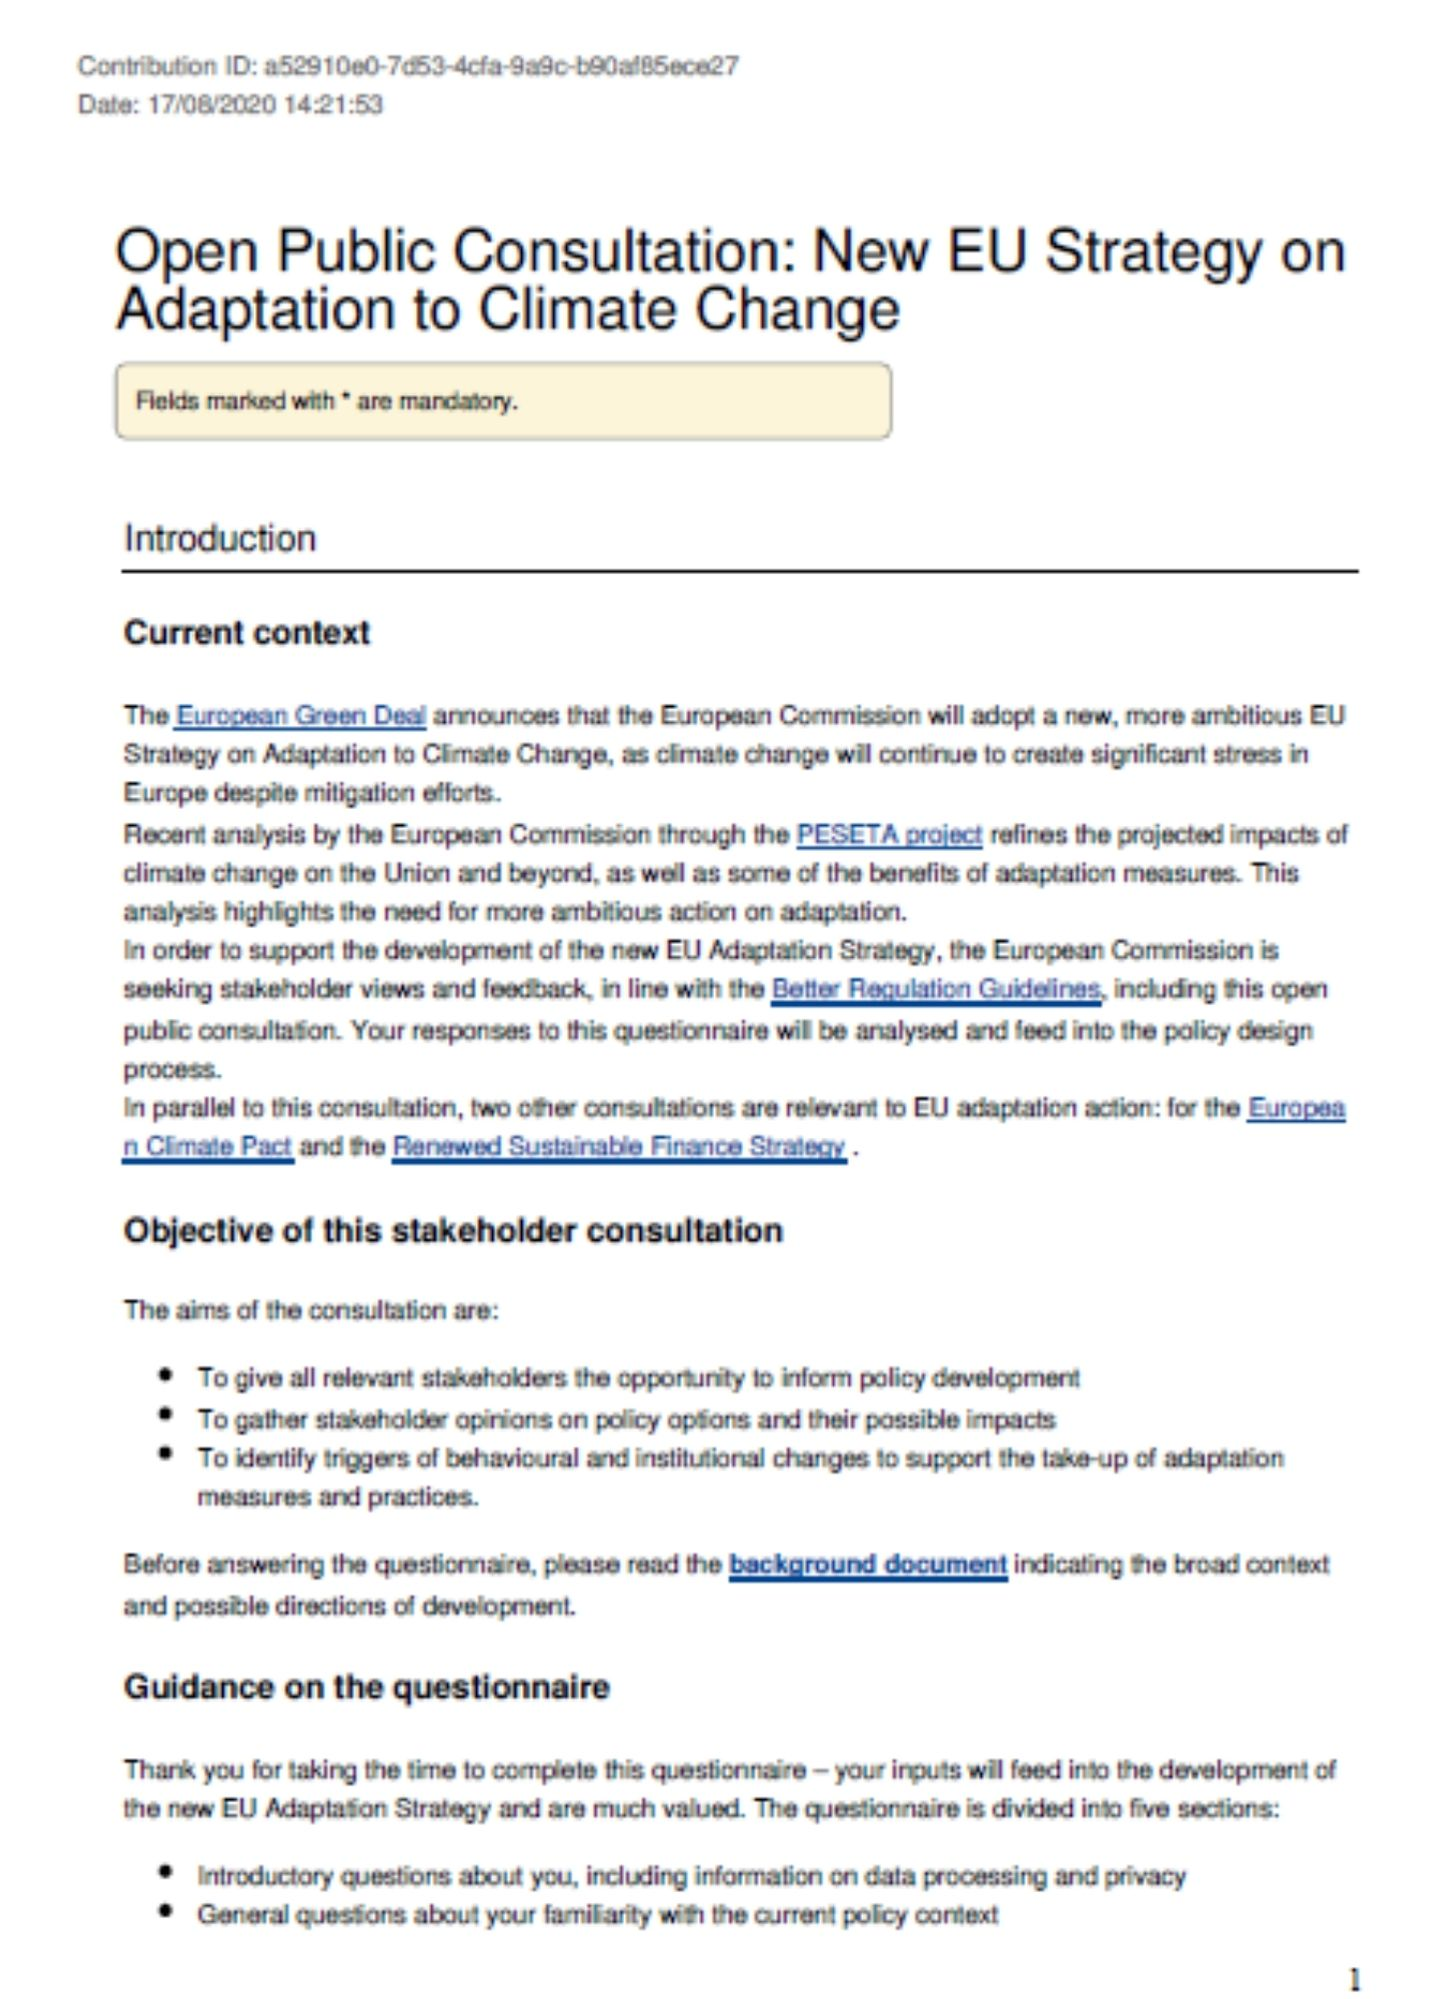 Consultation on climate change adaptation (2020)